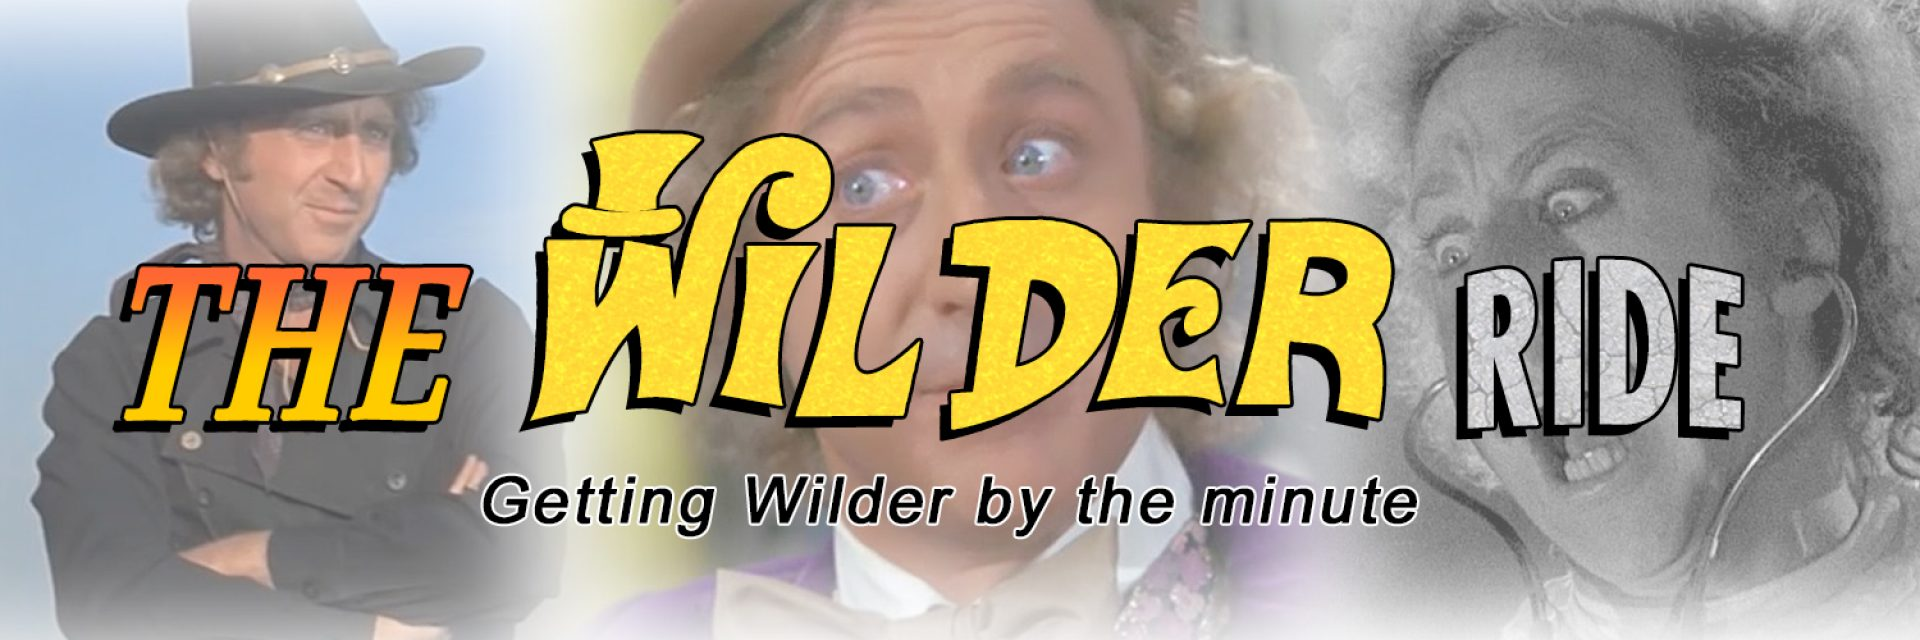 cropped-the-wilder-ride-header-with-headshots.jpg